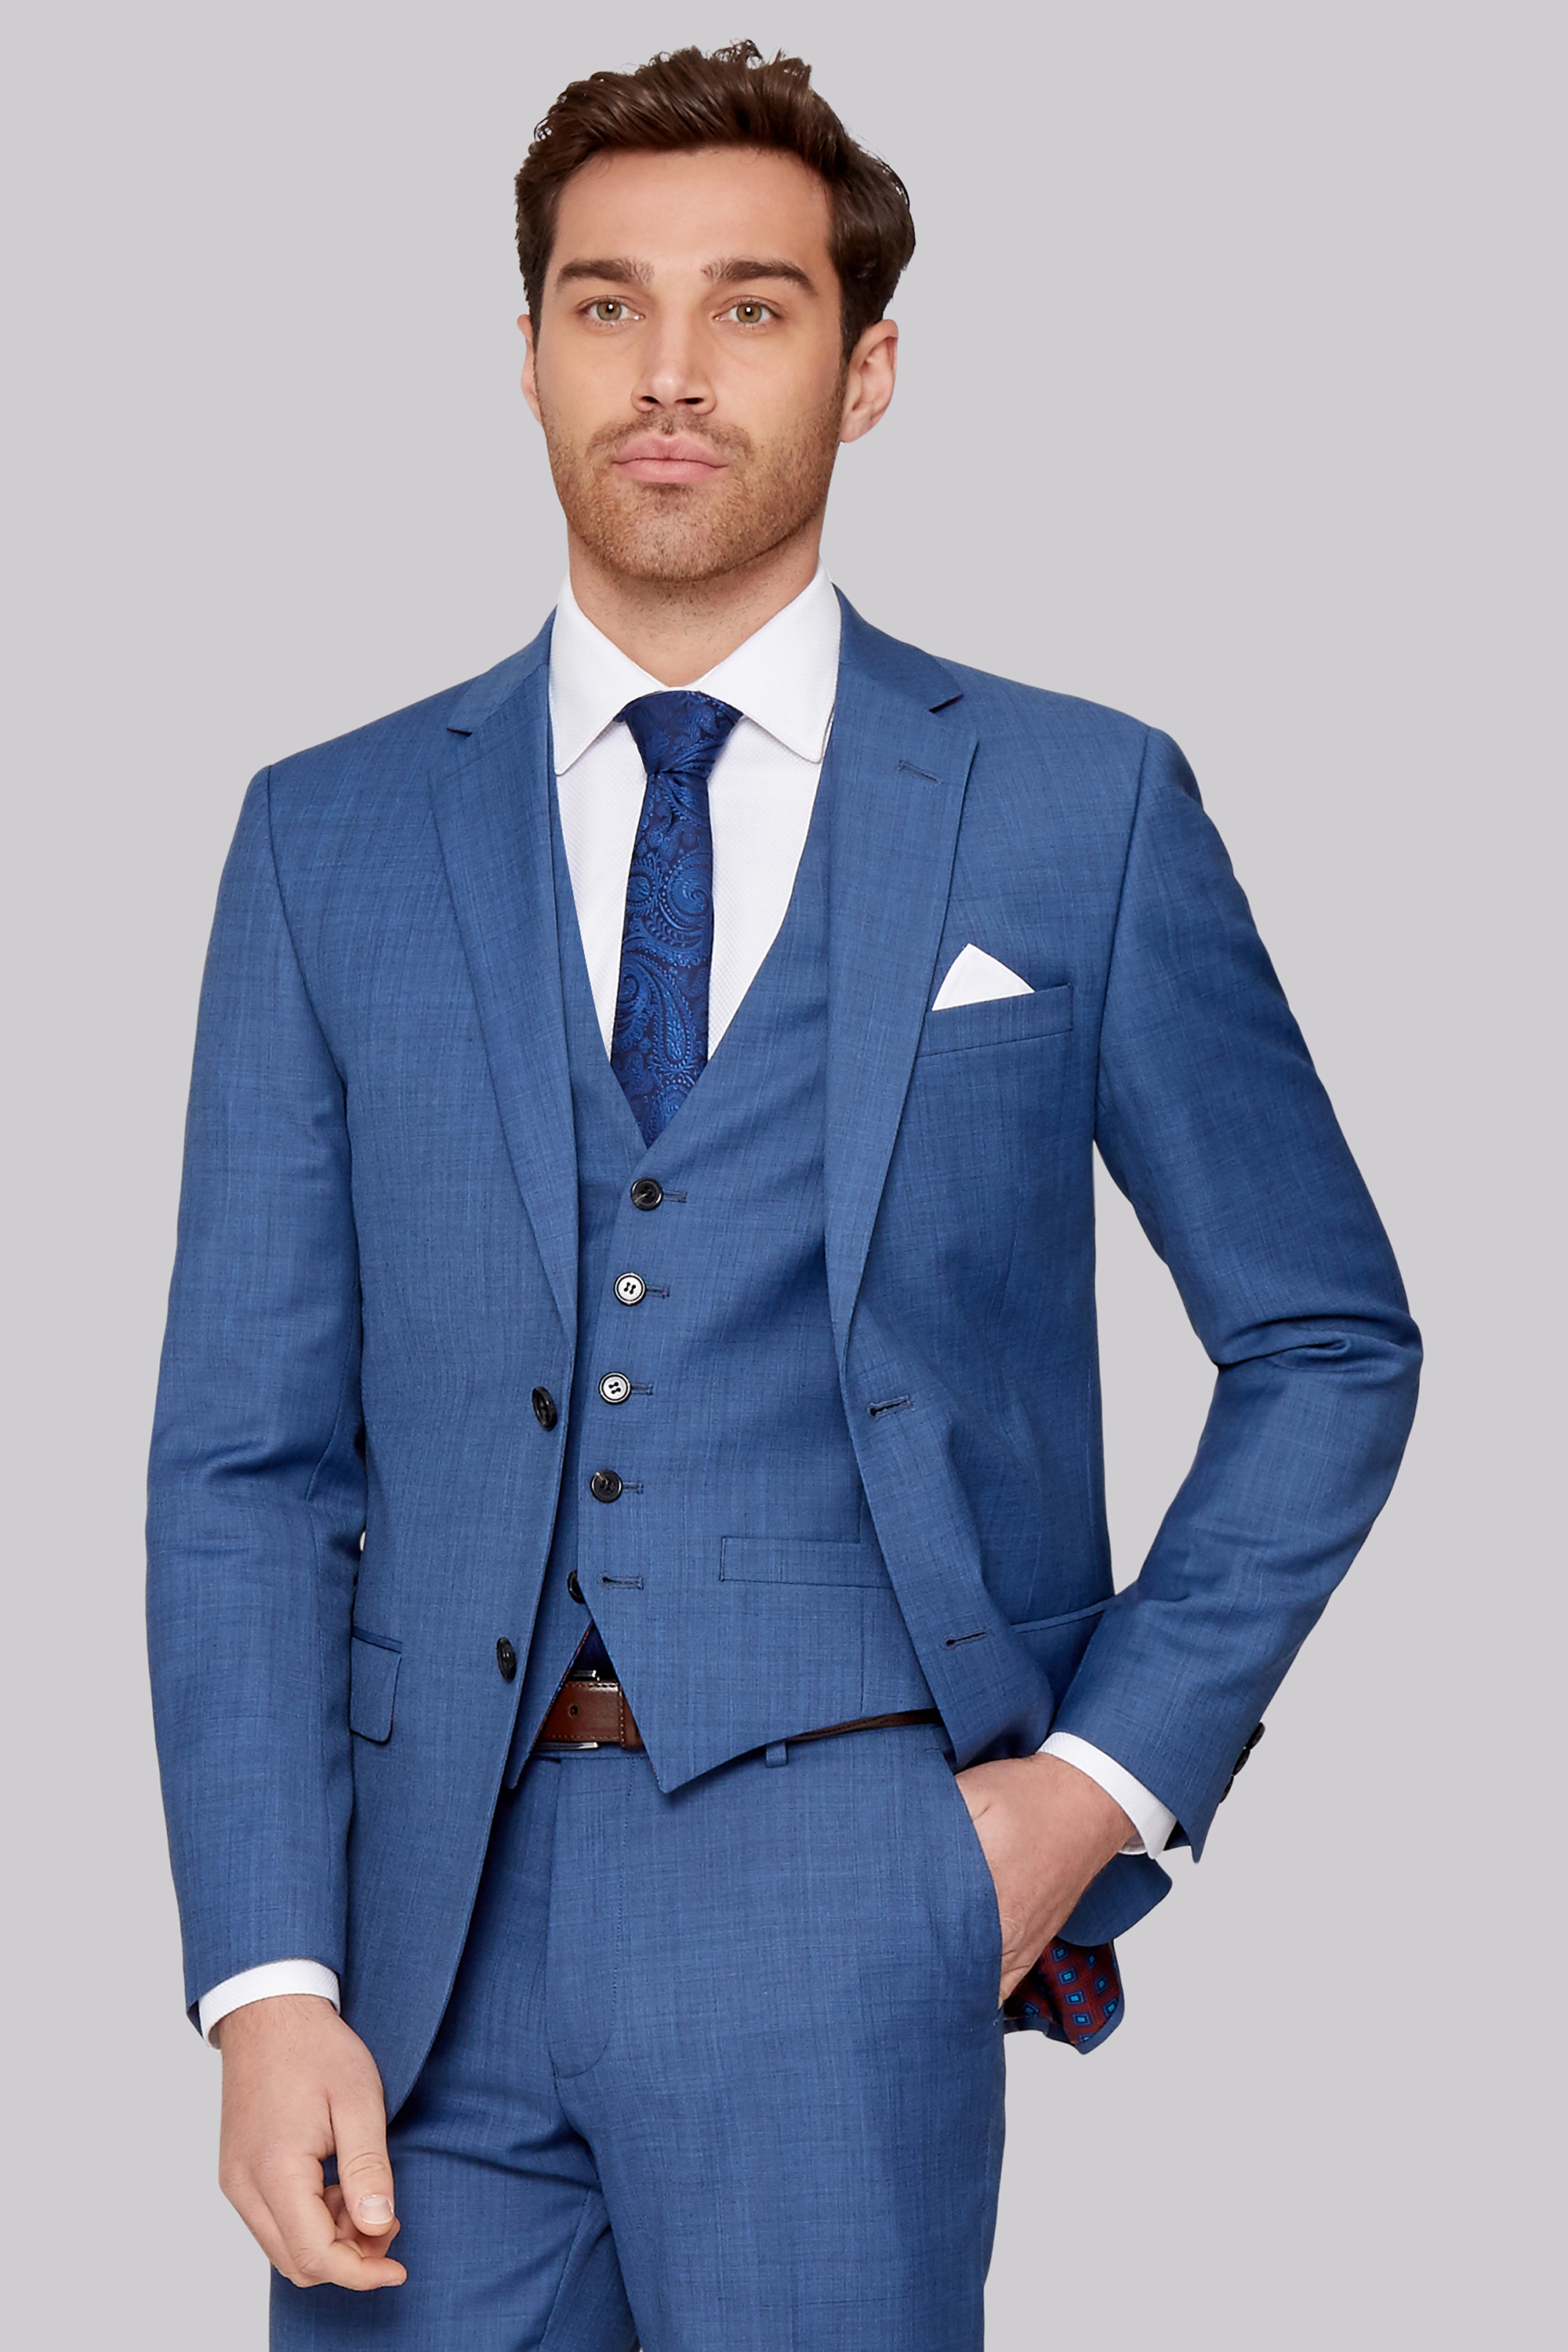 online store sports shoes best choice Tailored Fit French Blue Sharkskin Jacket by Ted Baker — Thread